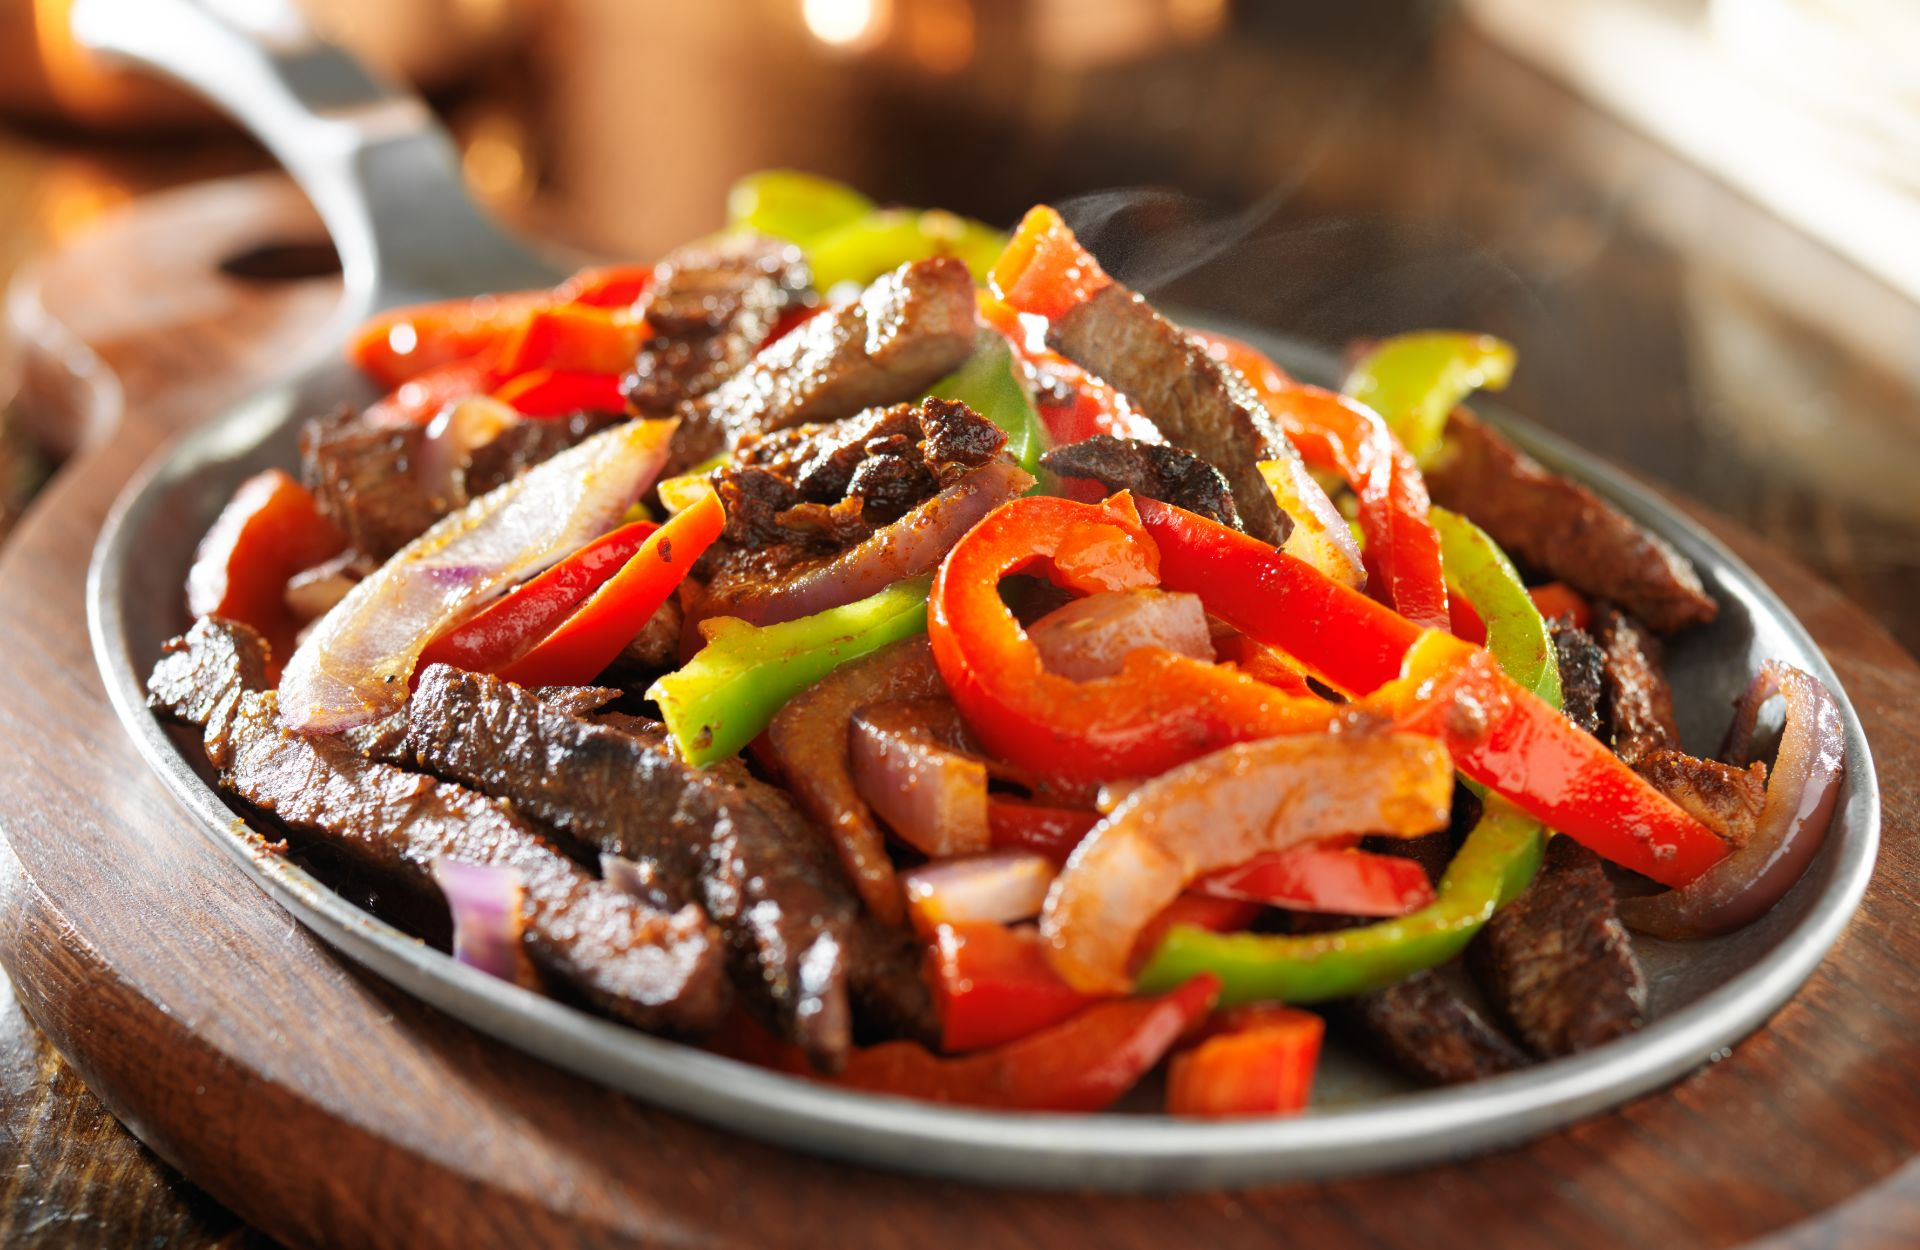 Steak fajitas in a skillet with sauteed peppers and onions